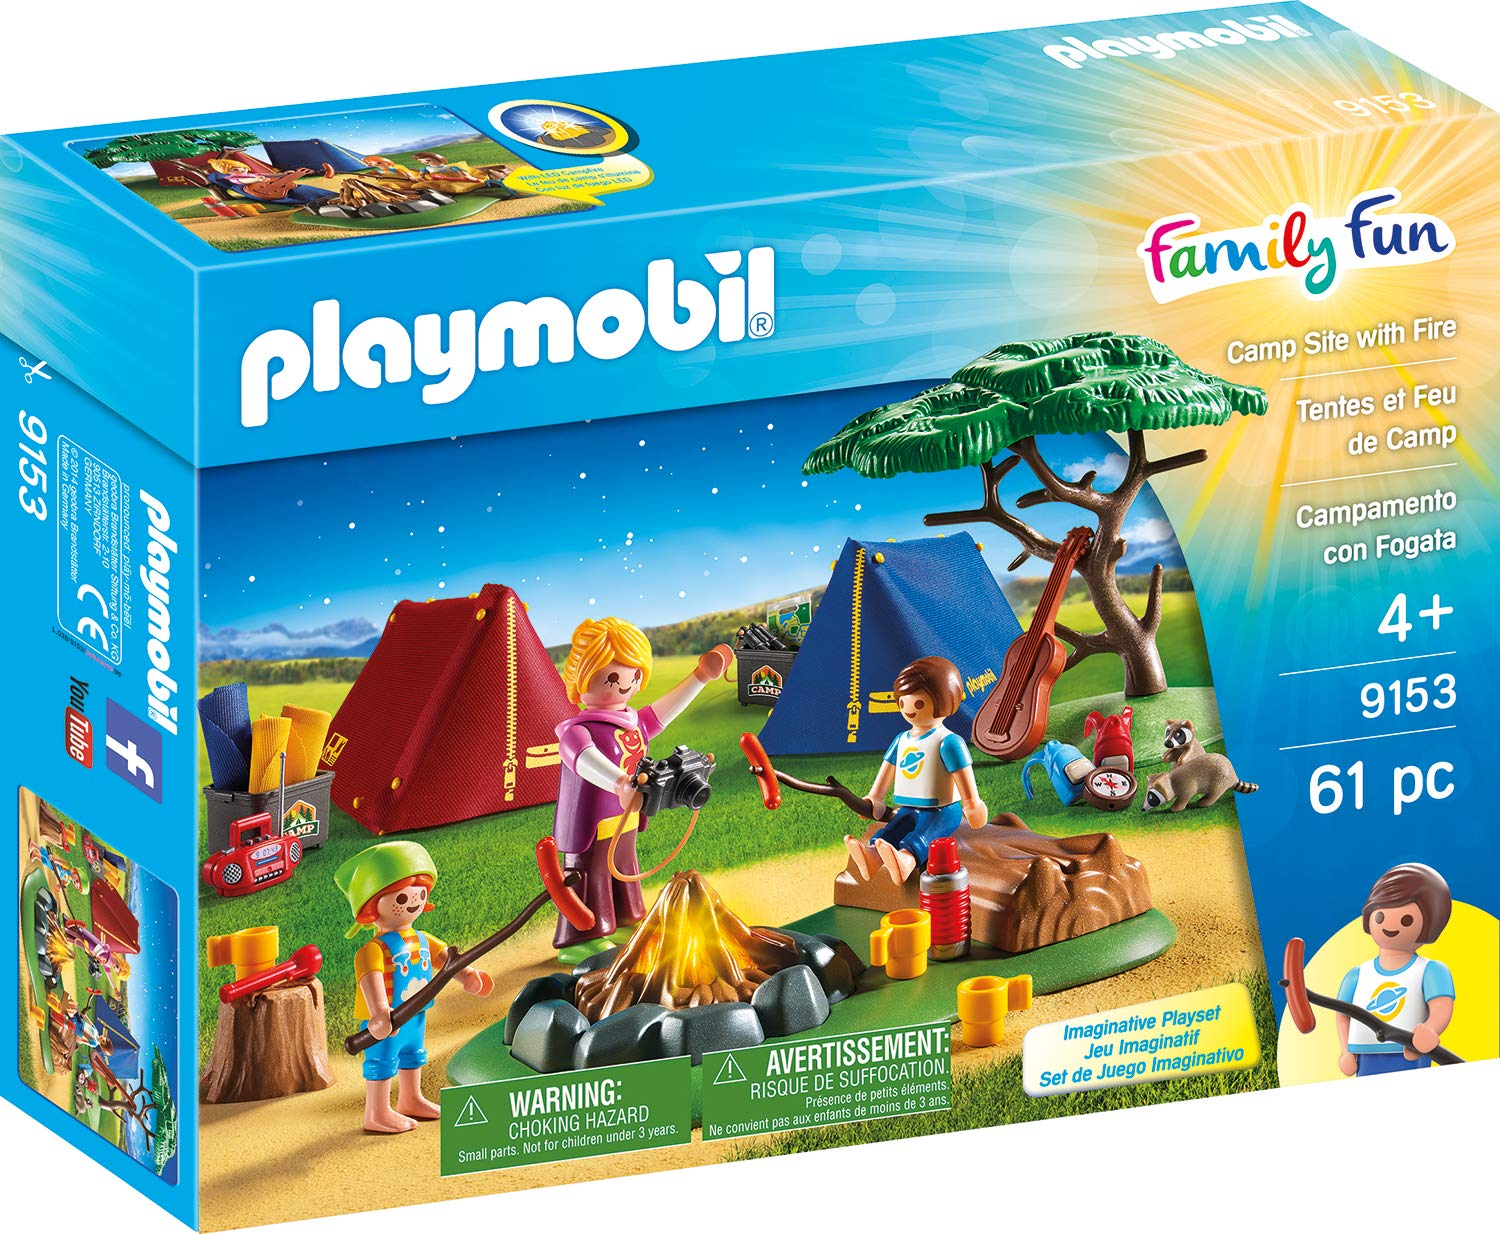 PLAYMOBIL® Camp Site with Fire Playmobil - Cranbury 9153